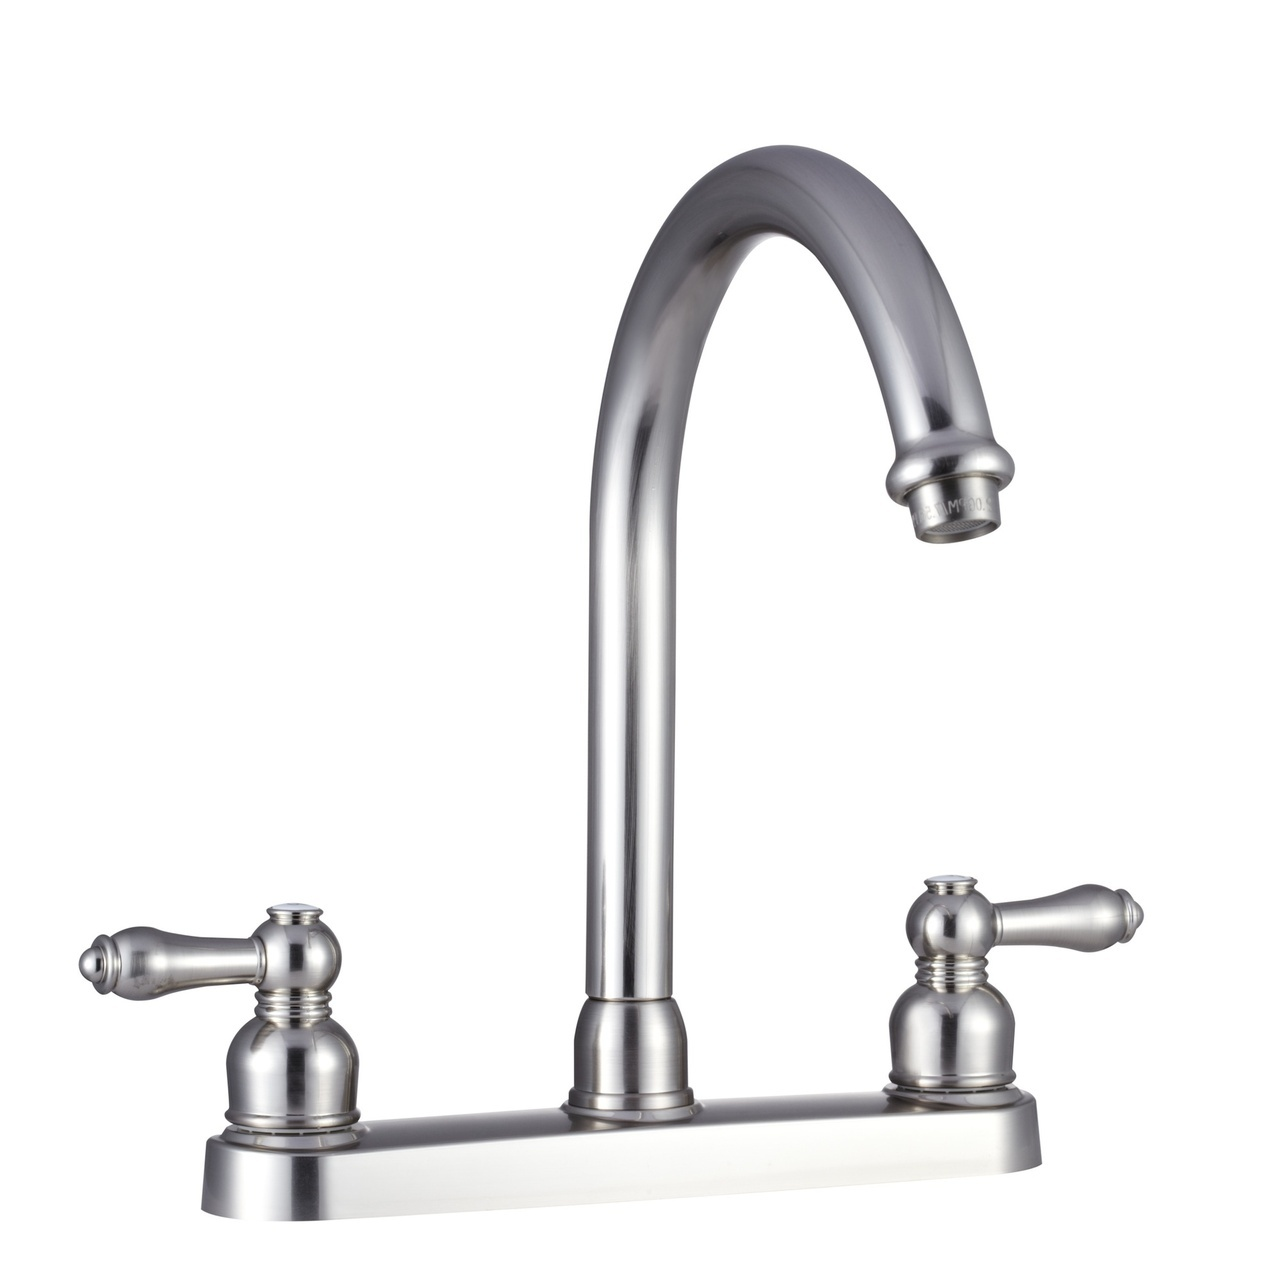 DF-PK340L-SN Dura Faucet Faucet Used For Kitchen